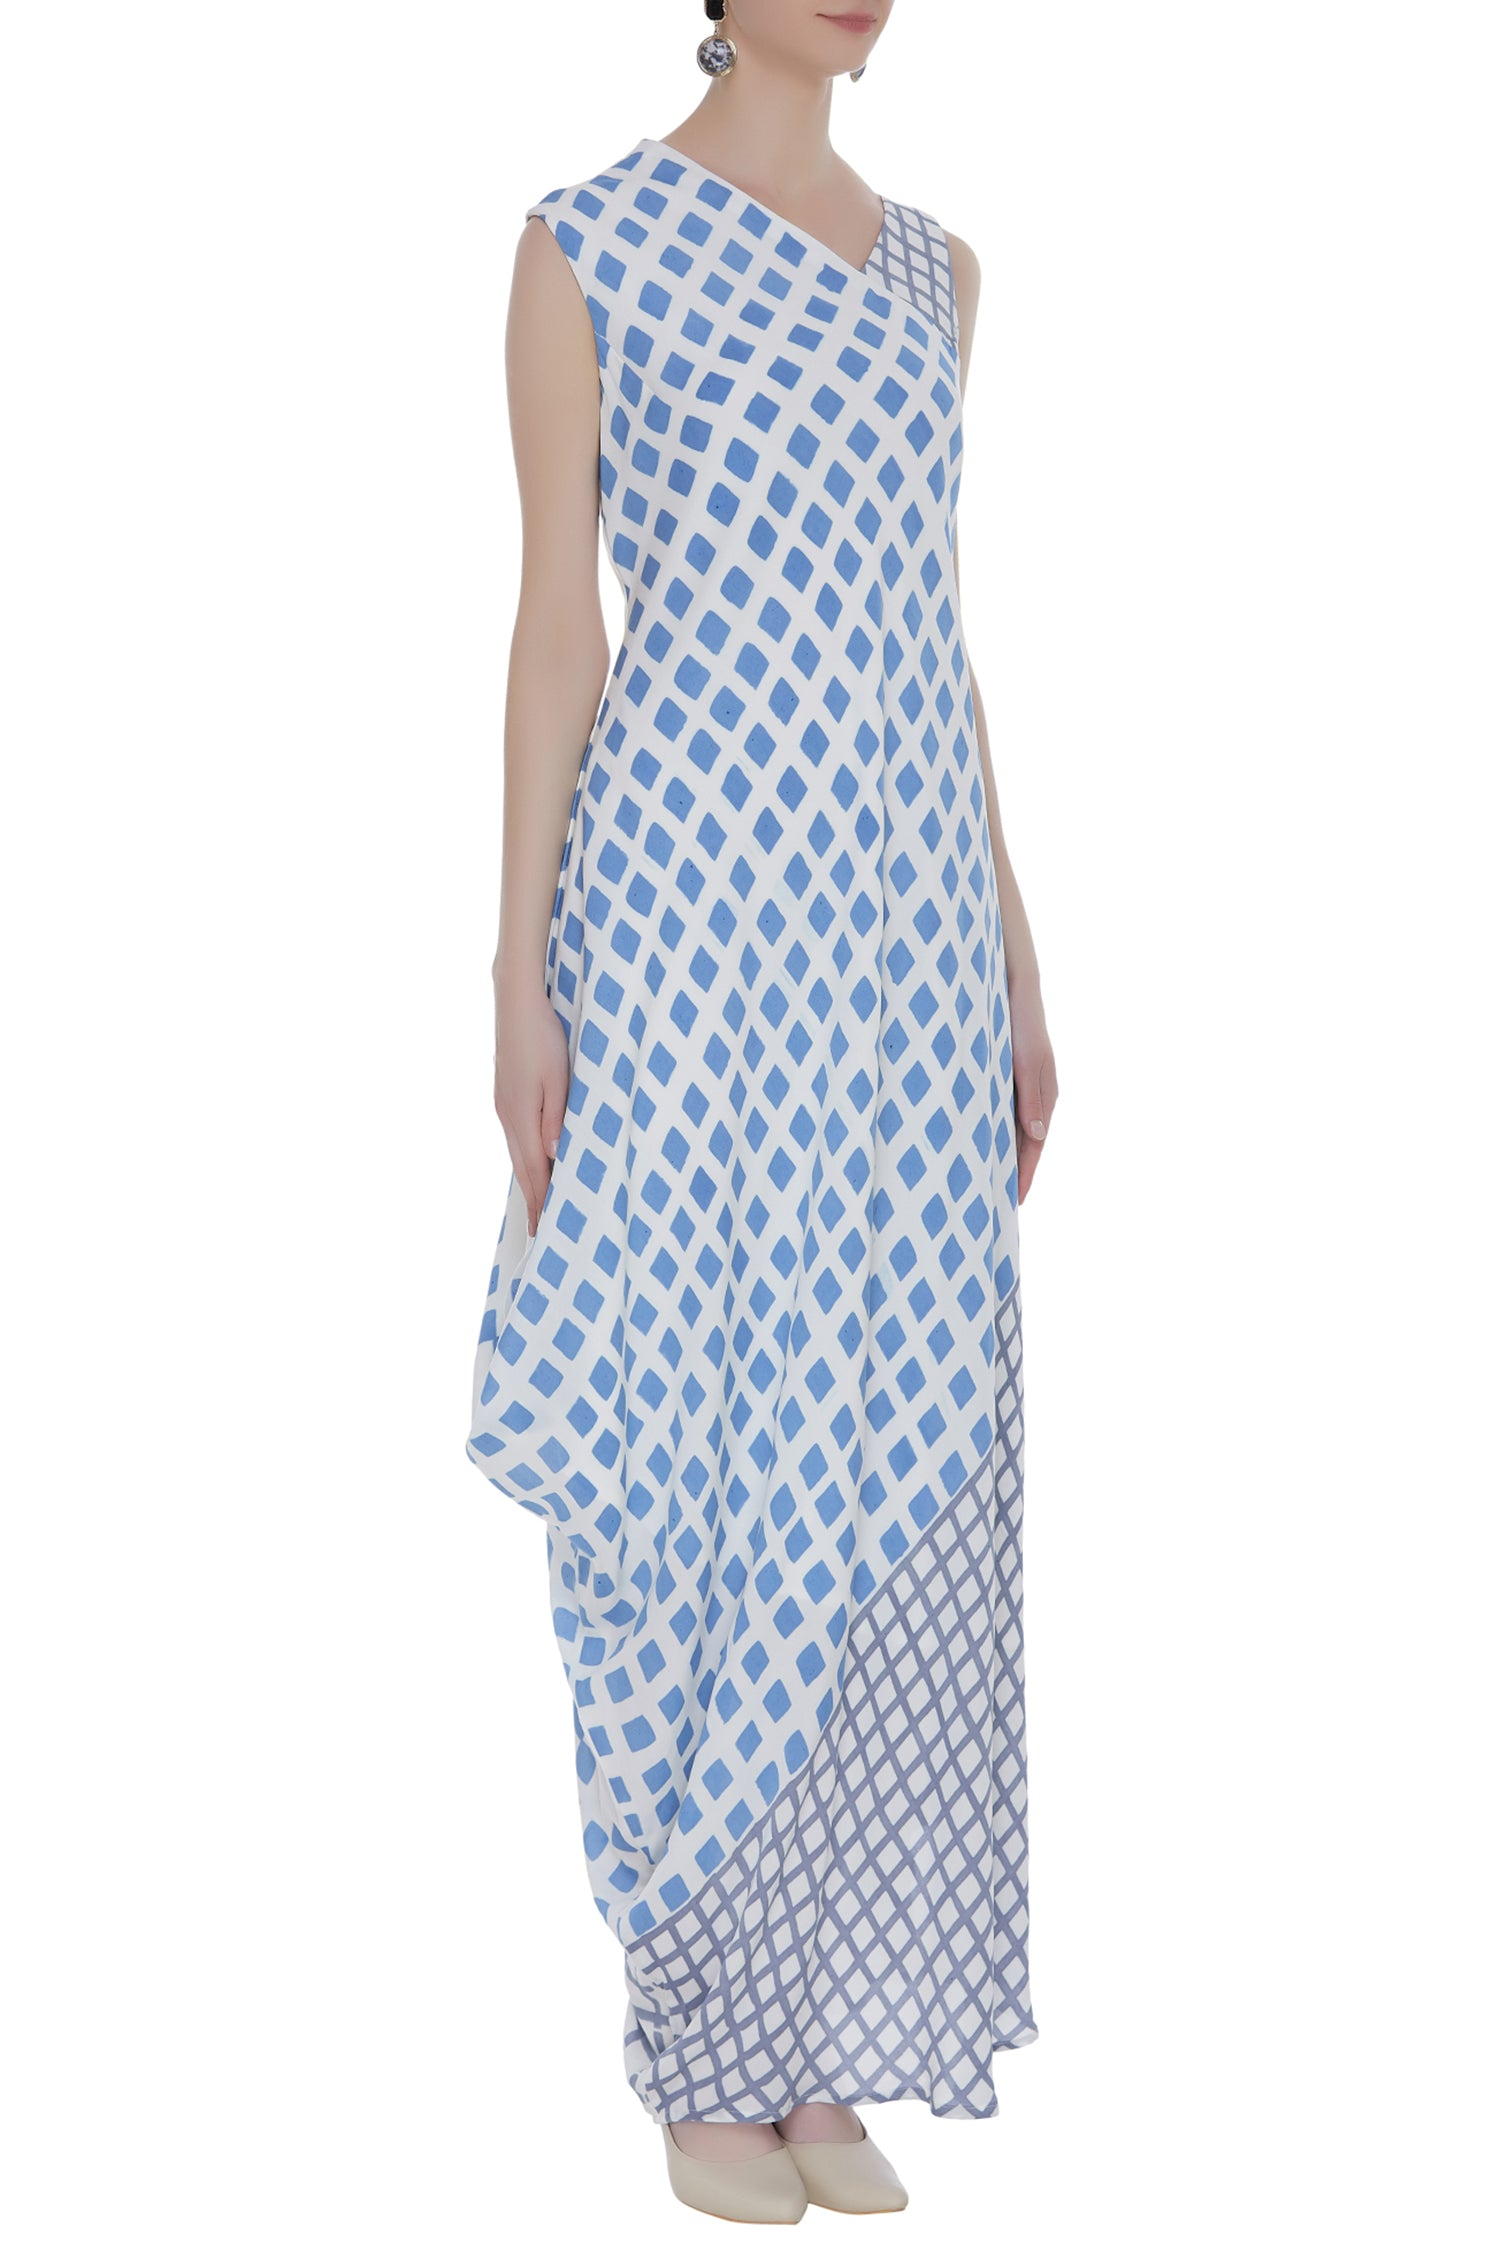 Placement Block Printed Asymetrical Dress